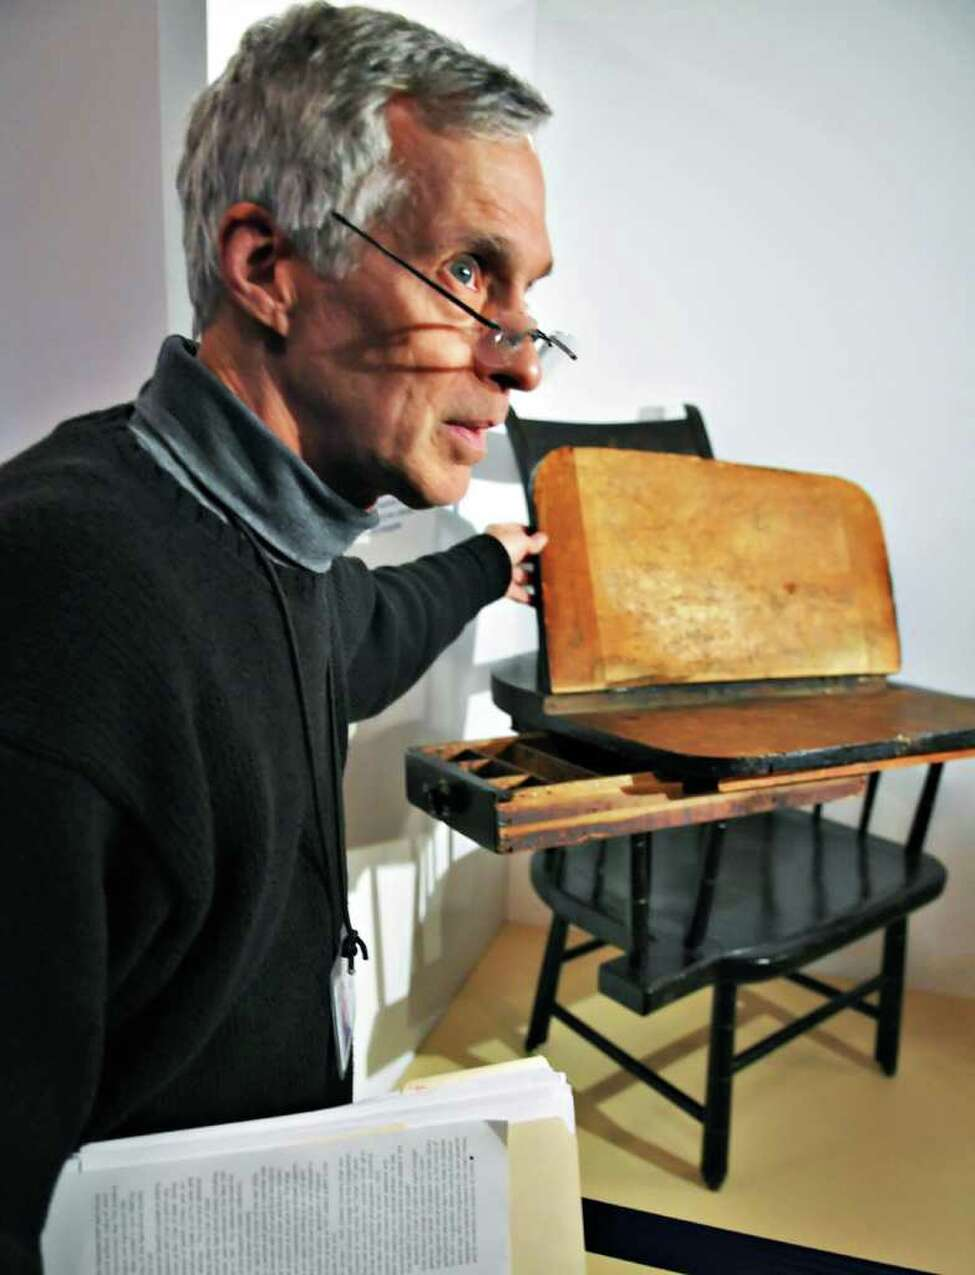 Gene Mackay, exhibit planner for the State Museum, shows graffiti on a writing chair belonging to Dewitt Clinton, part of an upcoming public display of historic artifacts at the state Capitol on Tuesday afternoon November 9, 2010. (John Carl D'Annibale / Times Union)